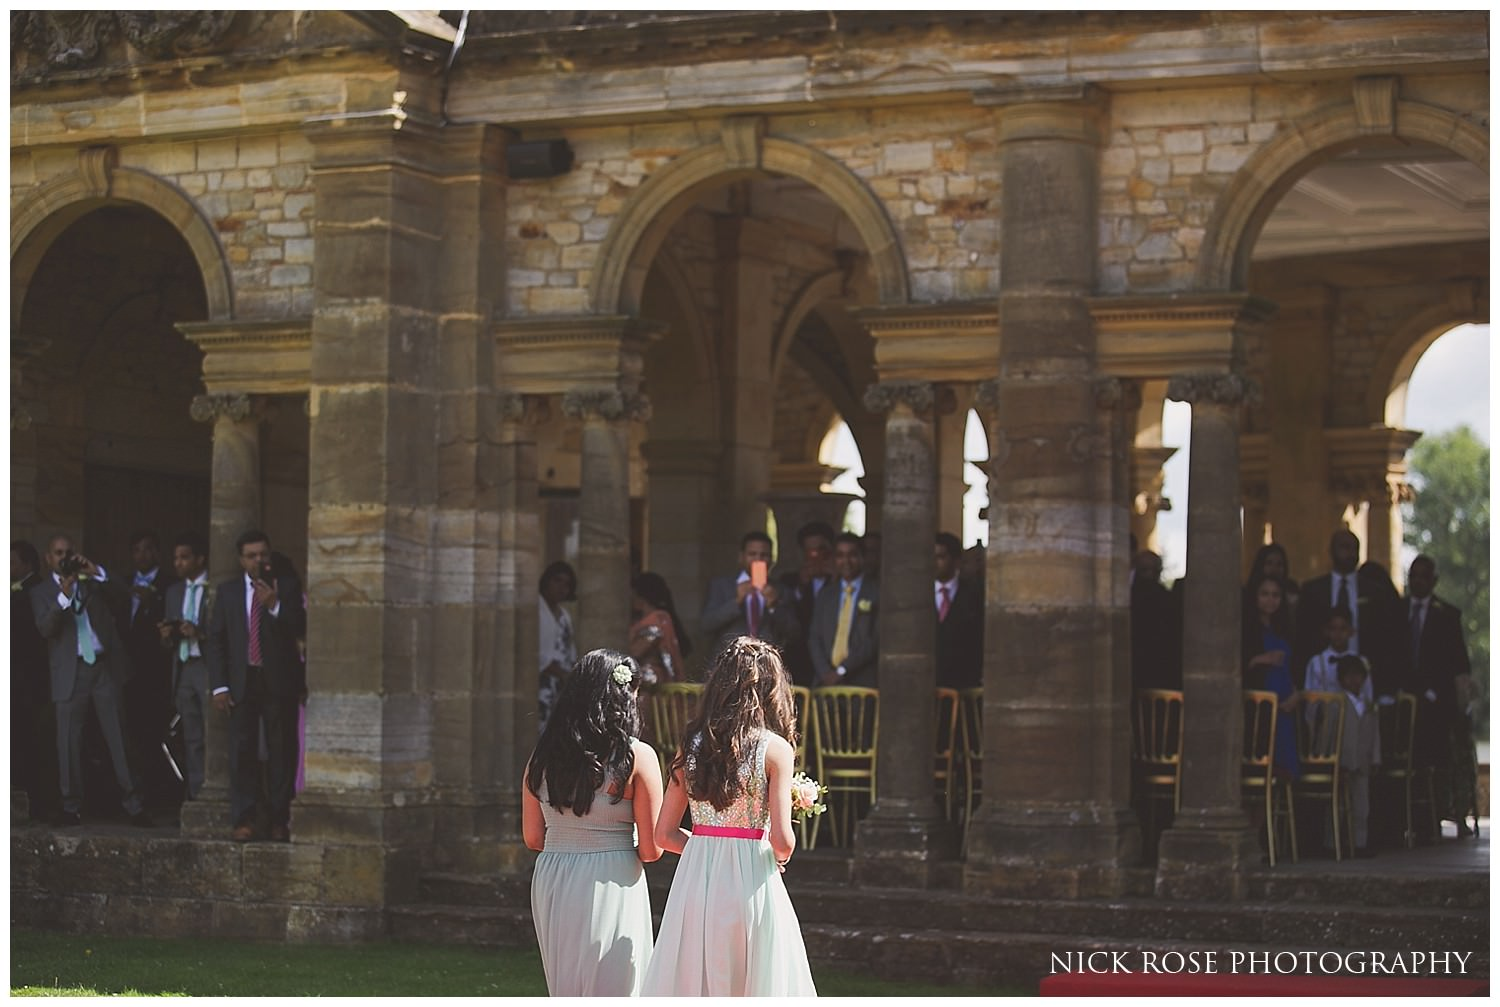 Bridesmaids walking up the aisle for an outdoor kent wedding at Hever